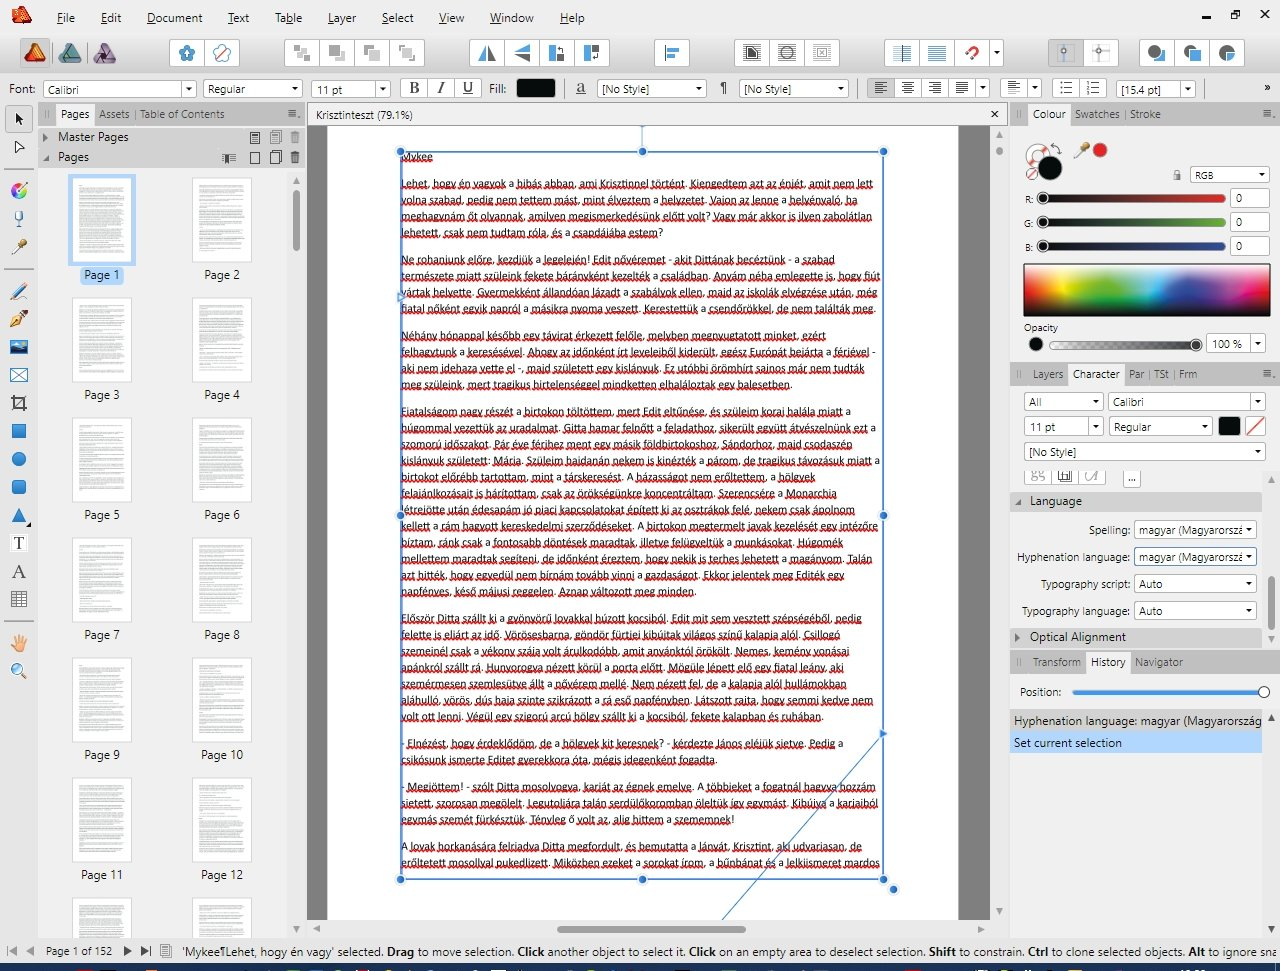 Dictionaries and spell check - Affinity on Desktop Questions (Mac